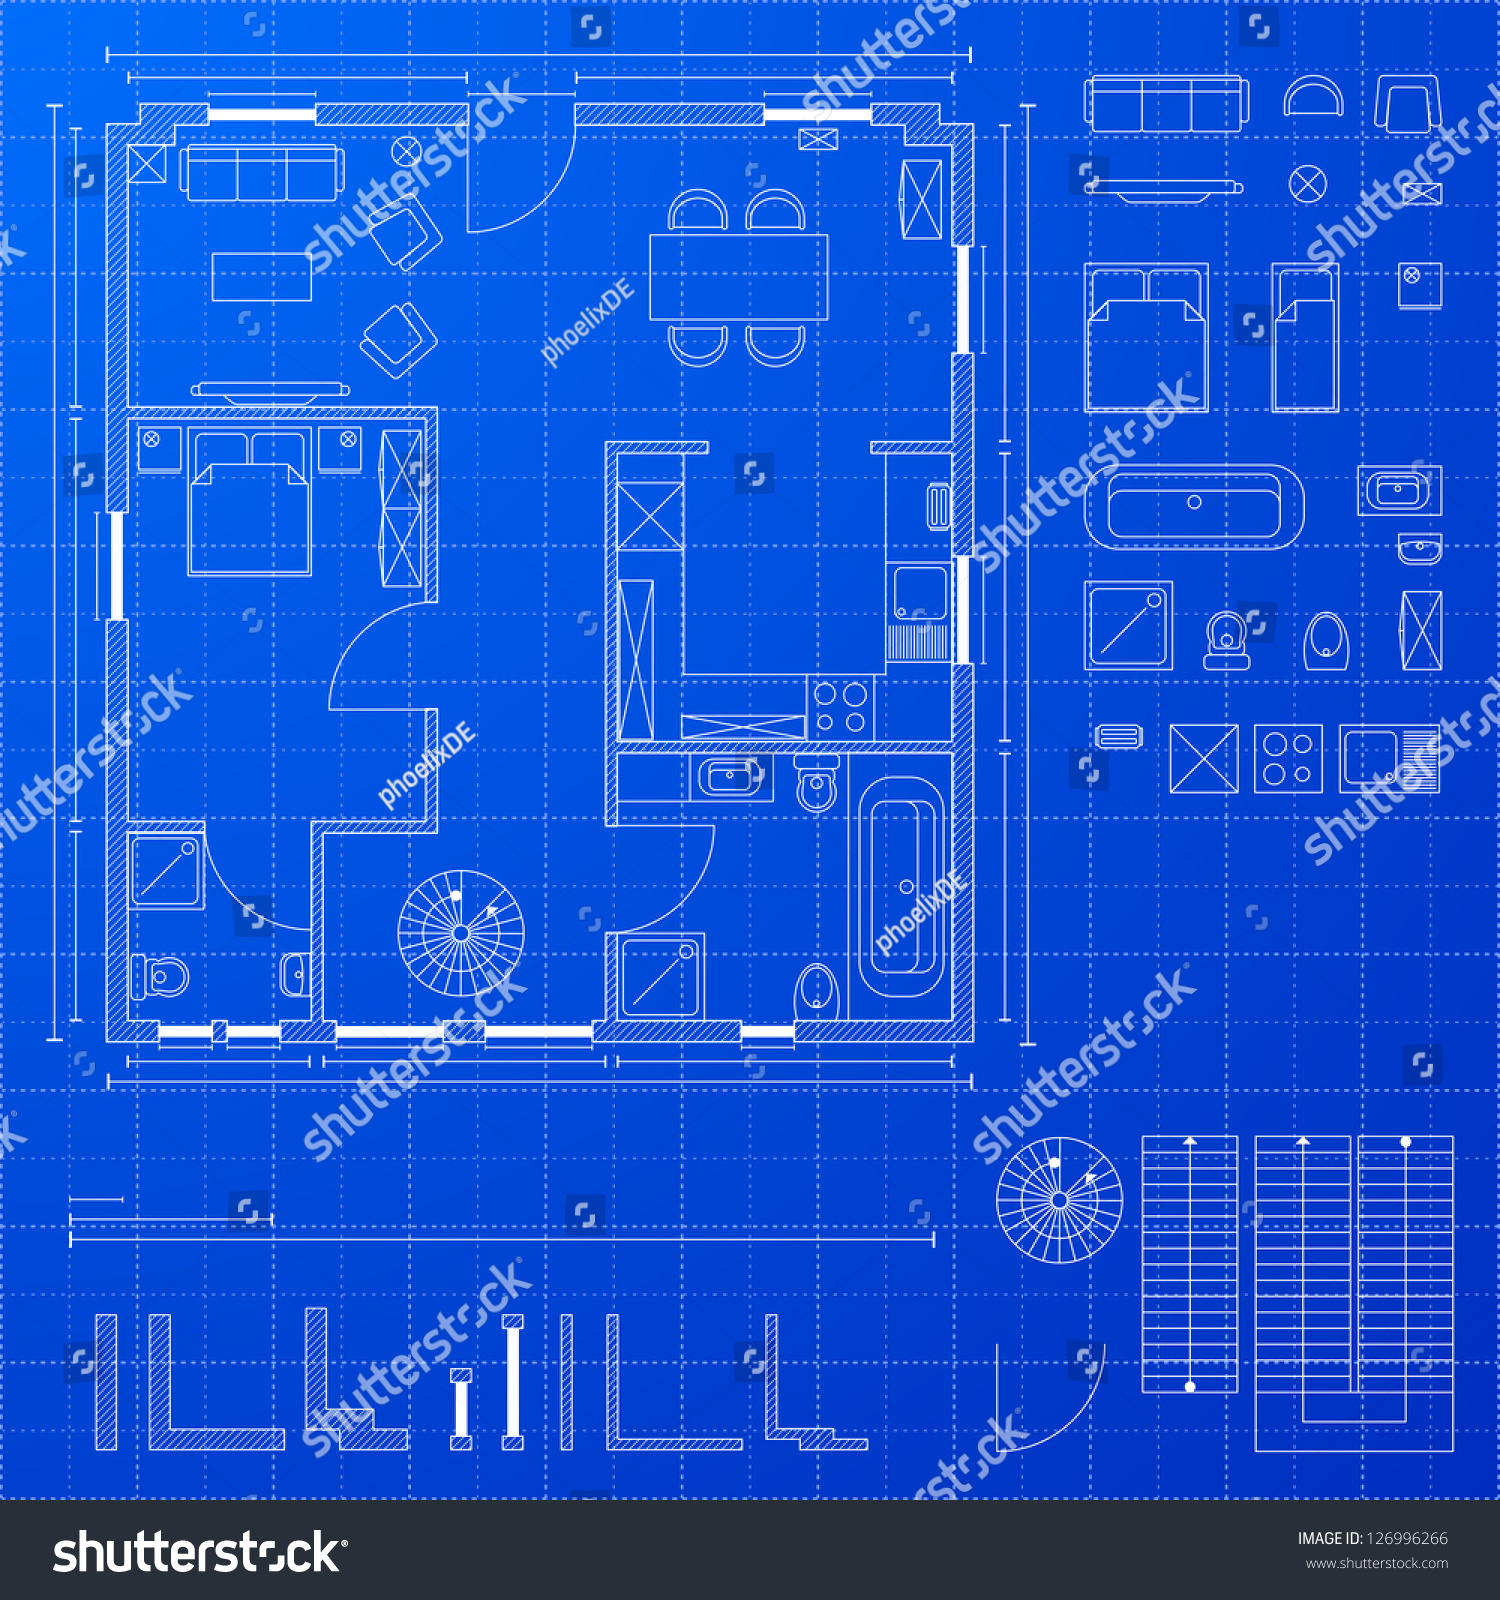 Blueprint Floor Plan Detailed Illustration Blueprint Floorplan Various Design